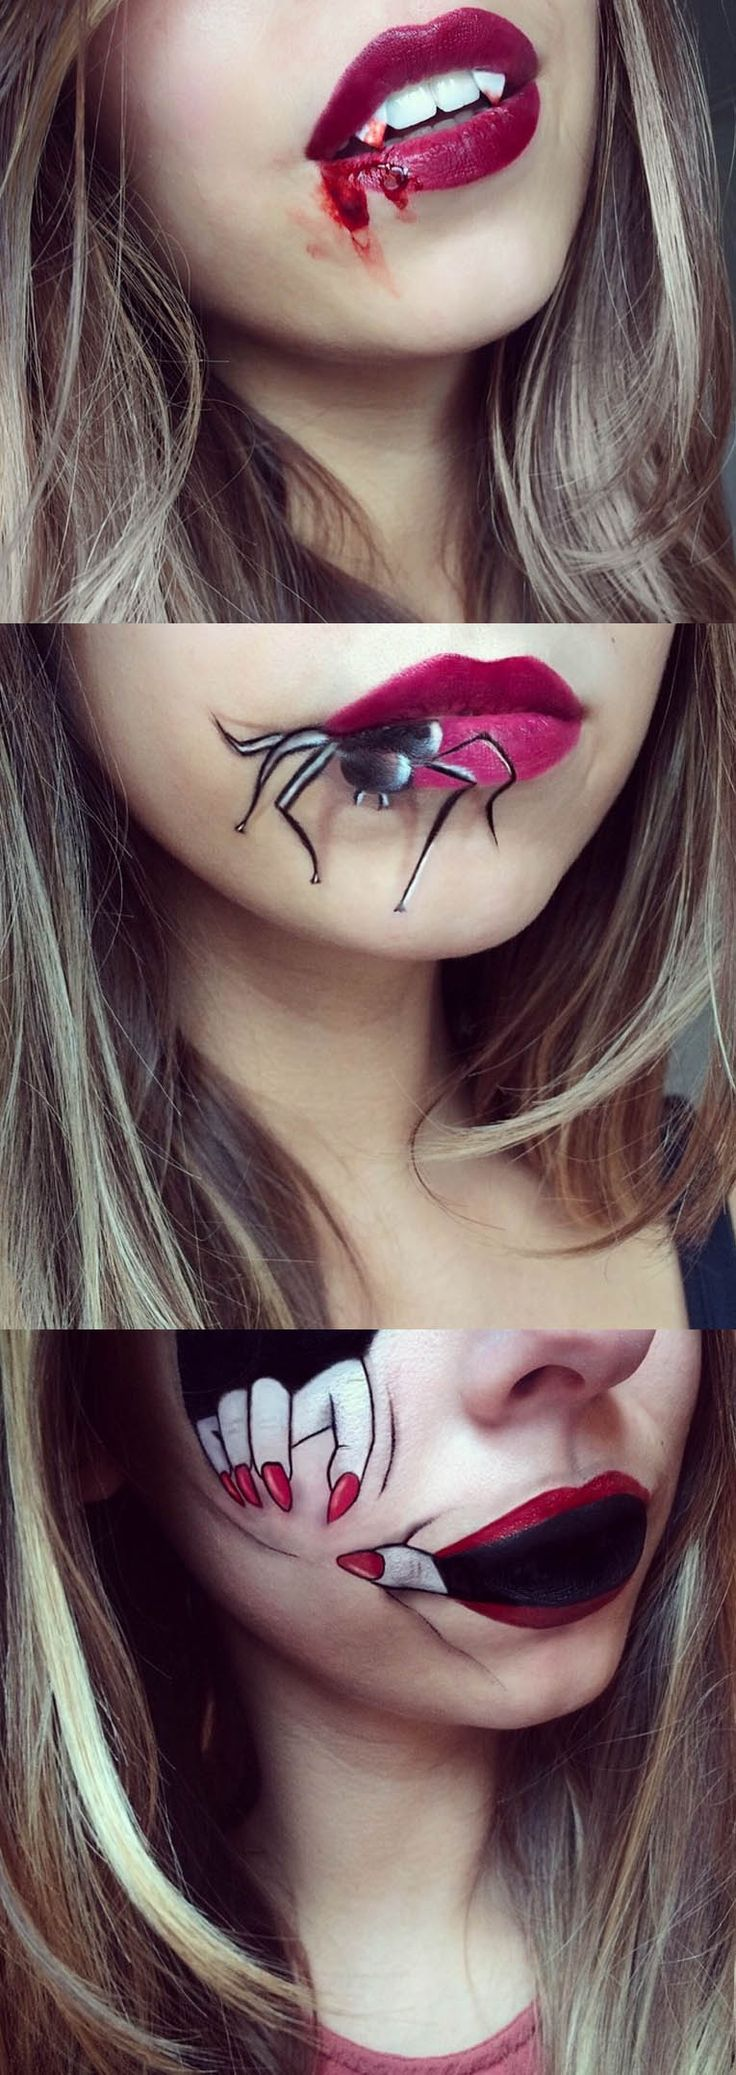 This Halloween lip art is pretty special